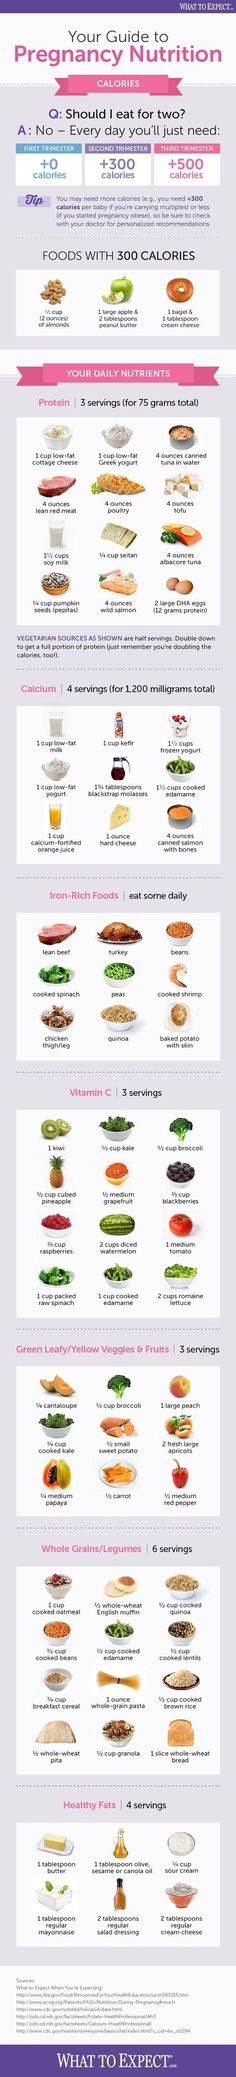 (181) An easy-to-read and share infographic offers the basics of pregnancy nutrition, from calories to best foods to eat. | Kids | Pregnancy | https://mamasnow.com/the-best-organic-prenatal-vitamins-6-multivitamins-reviews/